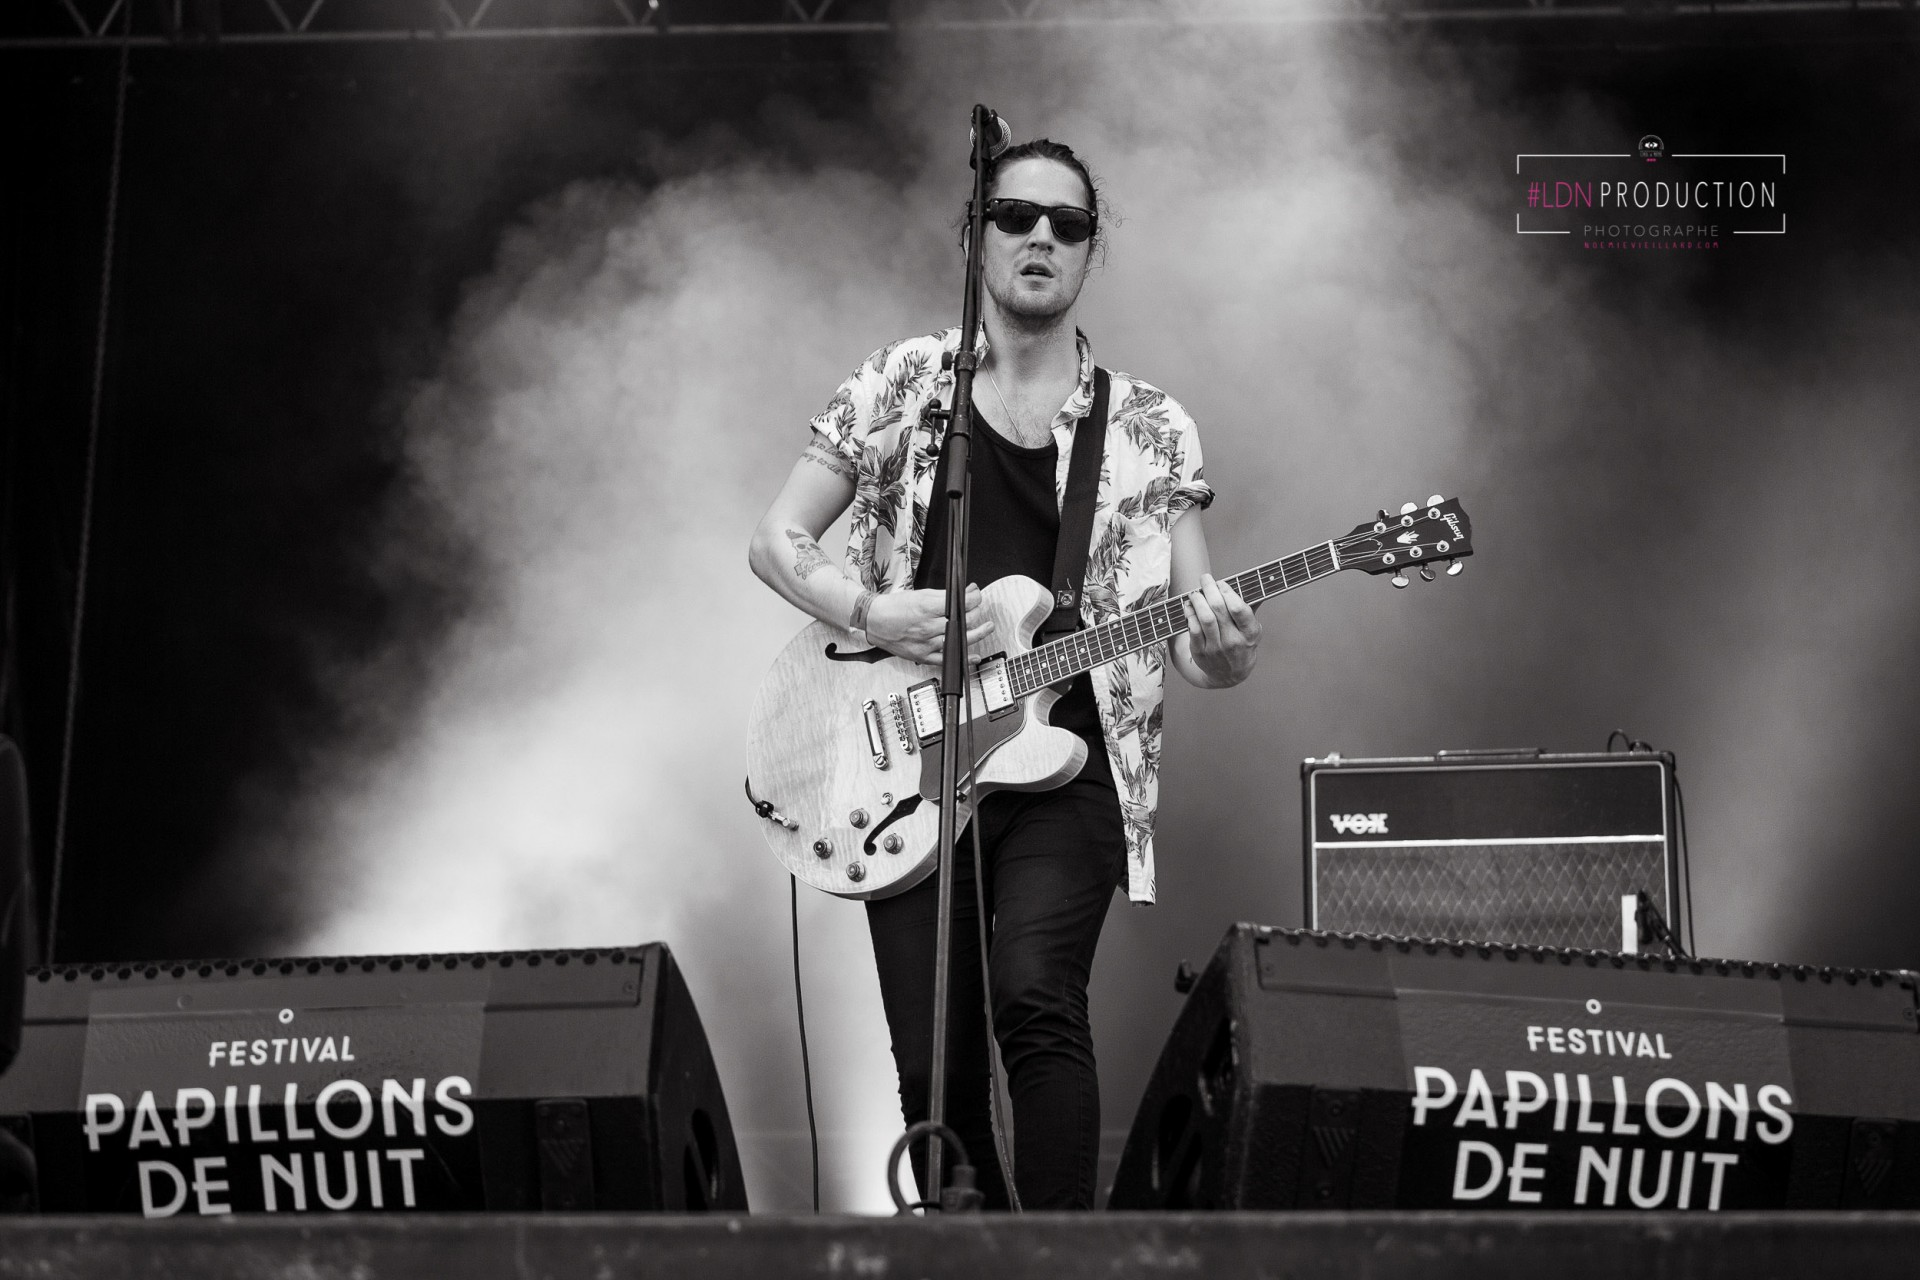 photo-carl-barat-and-the-jackals-festival-papillons-de-nuit-normandie-noemie-vieillard-14